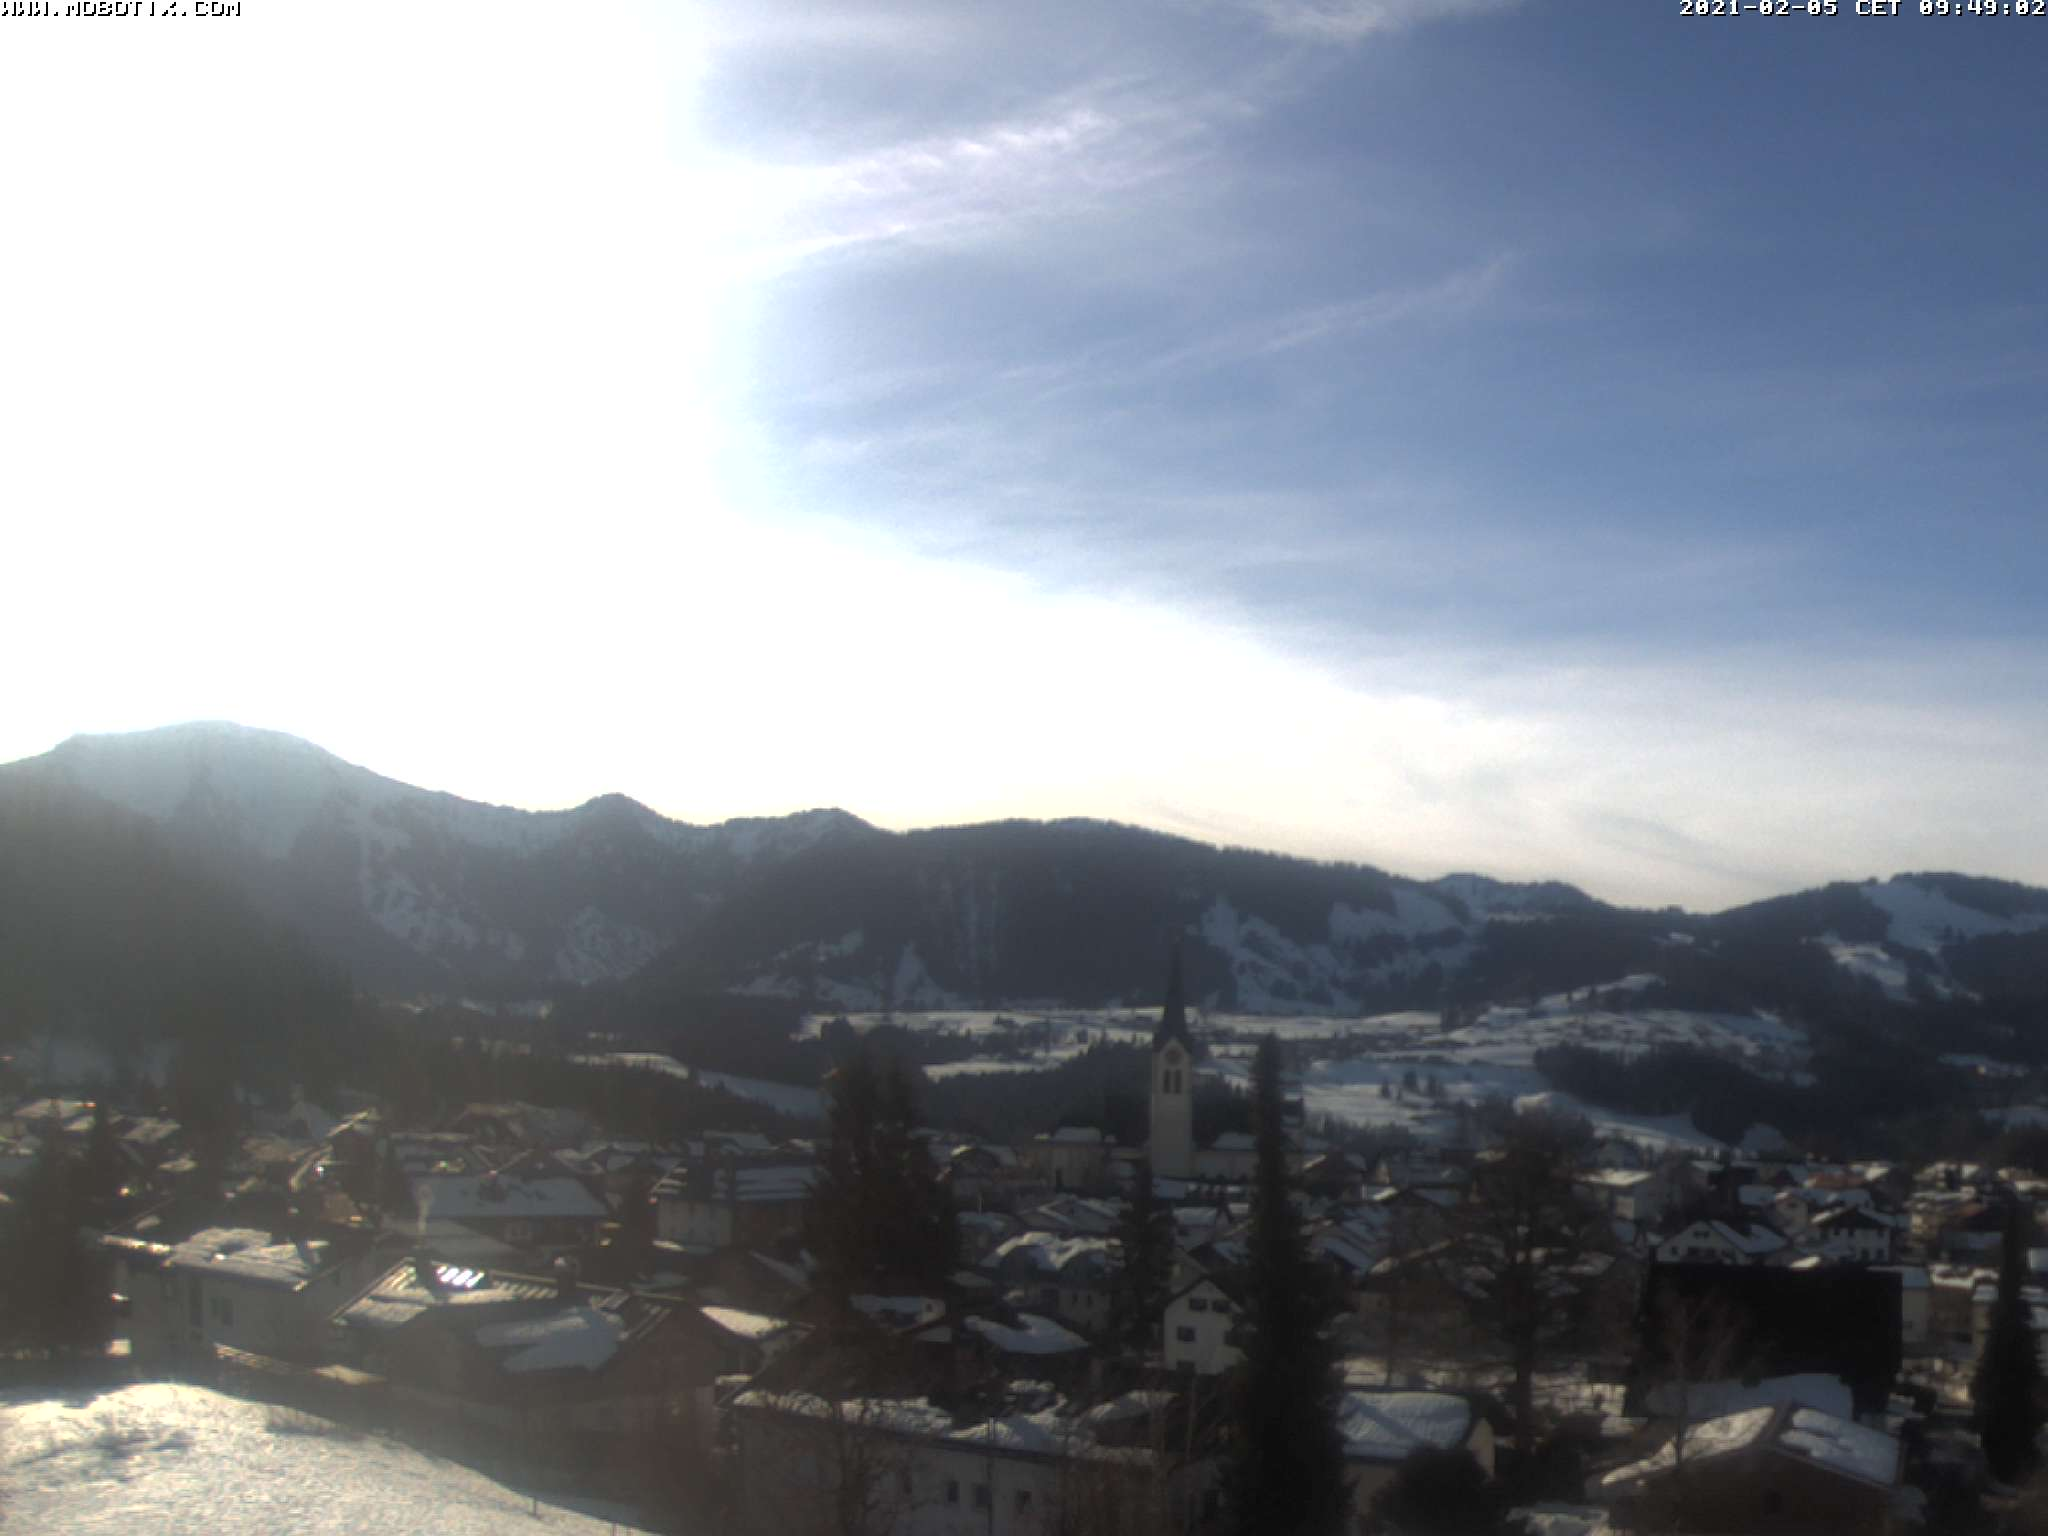 Webcam from the hotel Rosenalp in Oberstaufen, Allgäu, Bavaria